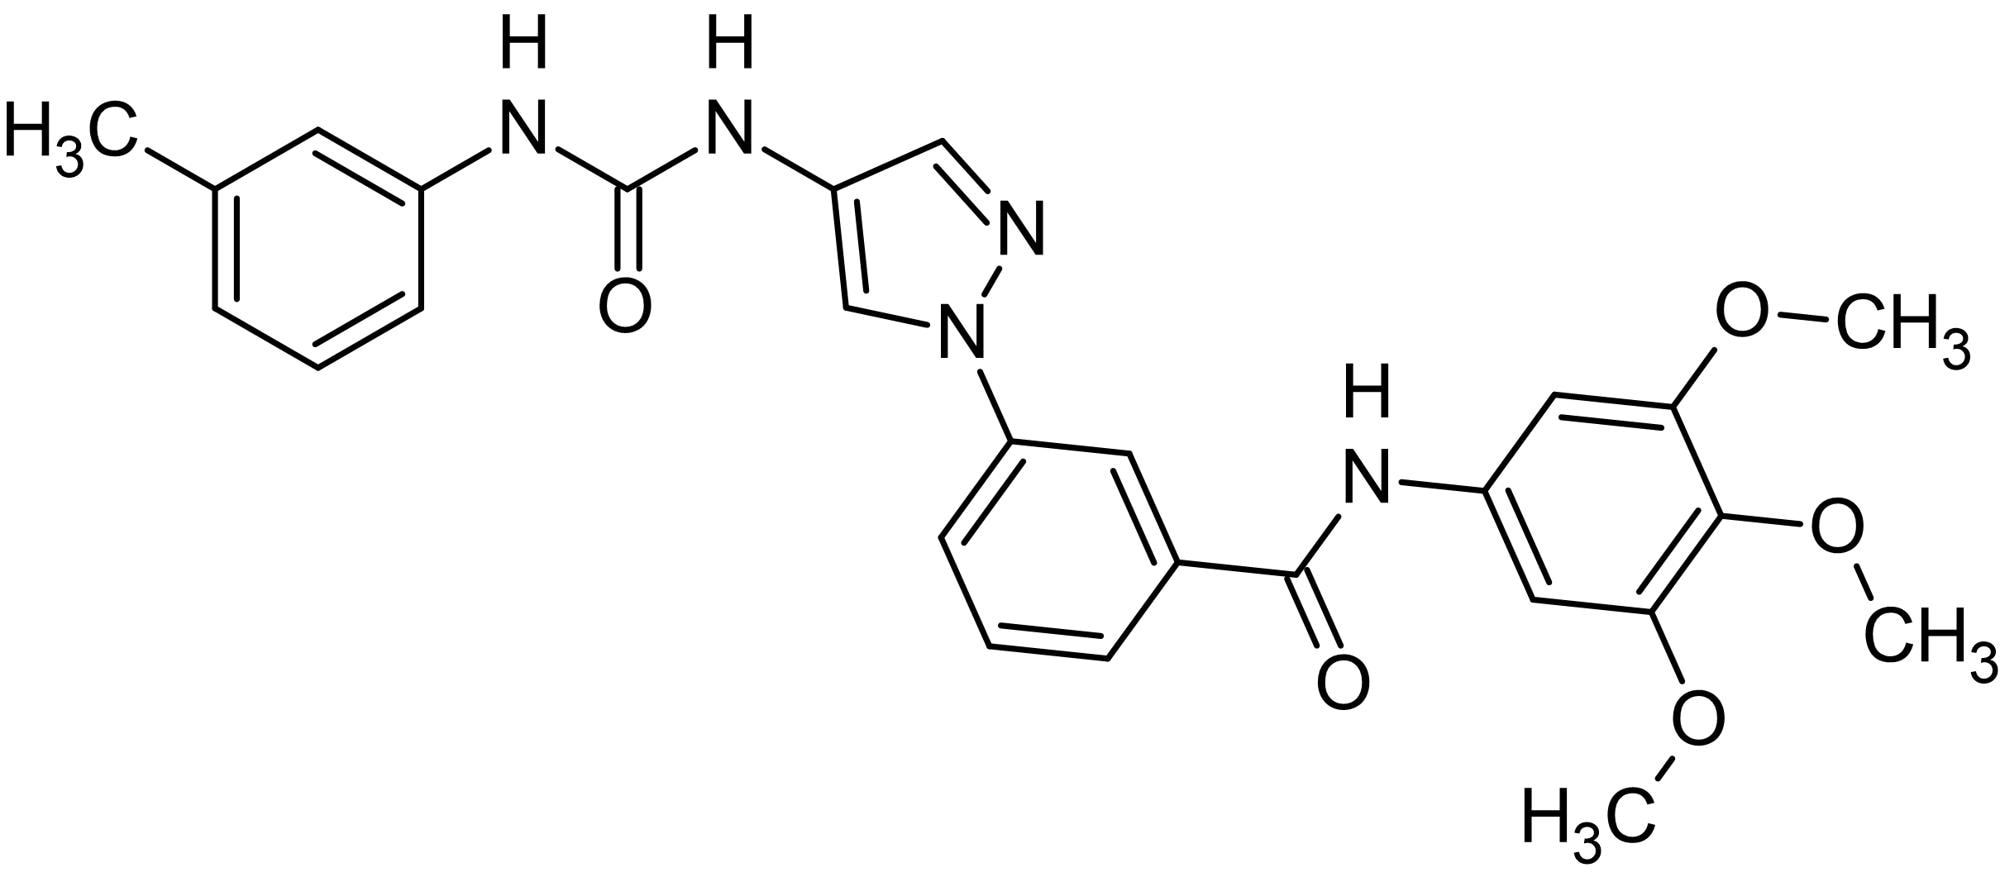 Chemical Structure - SR 3576, JNK3 inhibitor (ab146429)